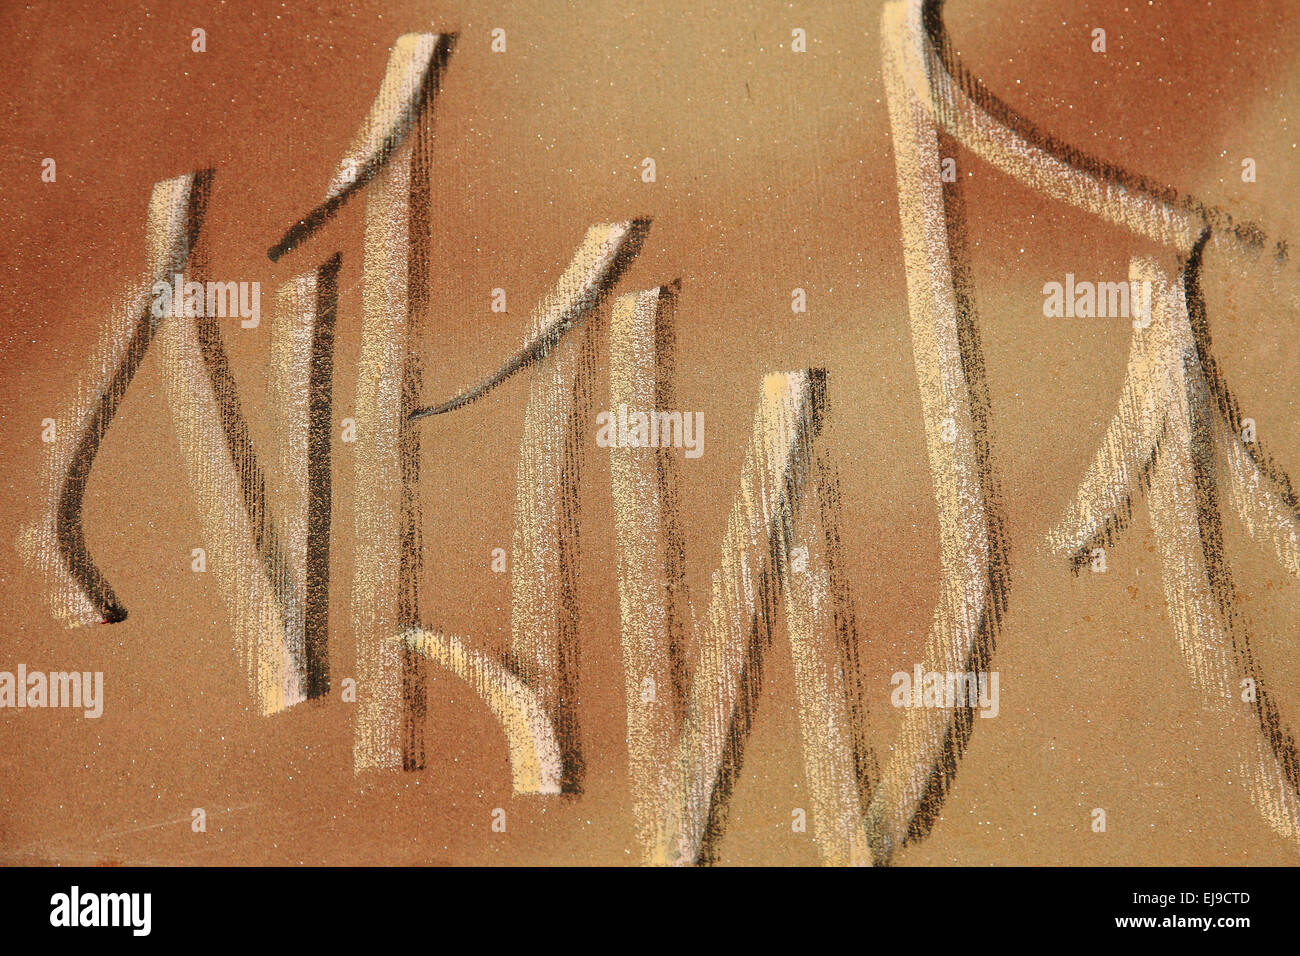 Graffito brown tones Stock Photo